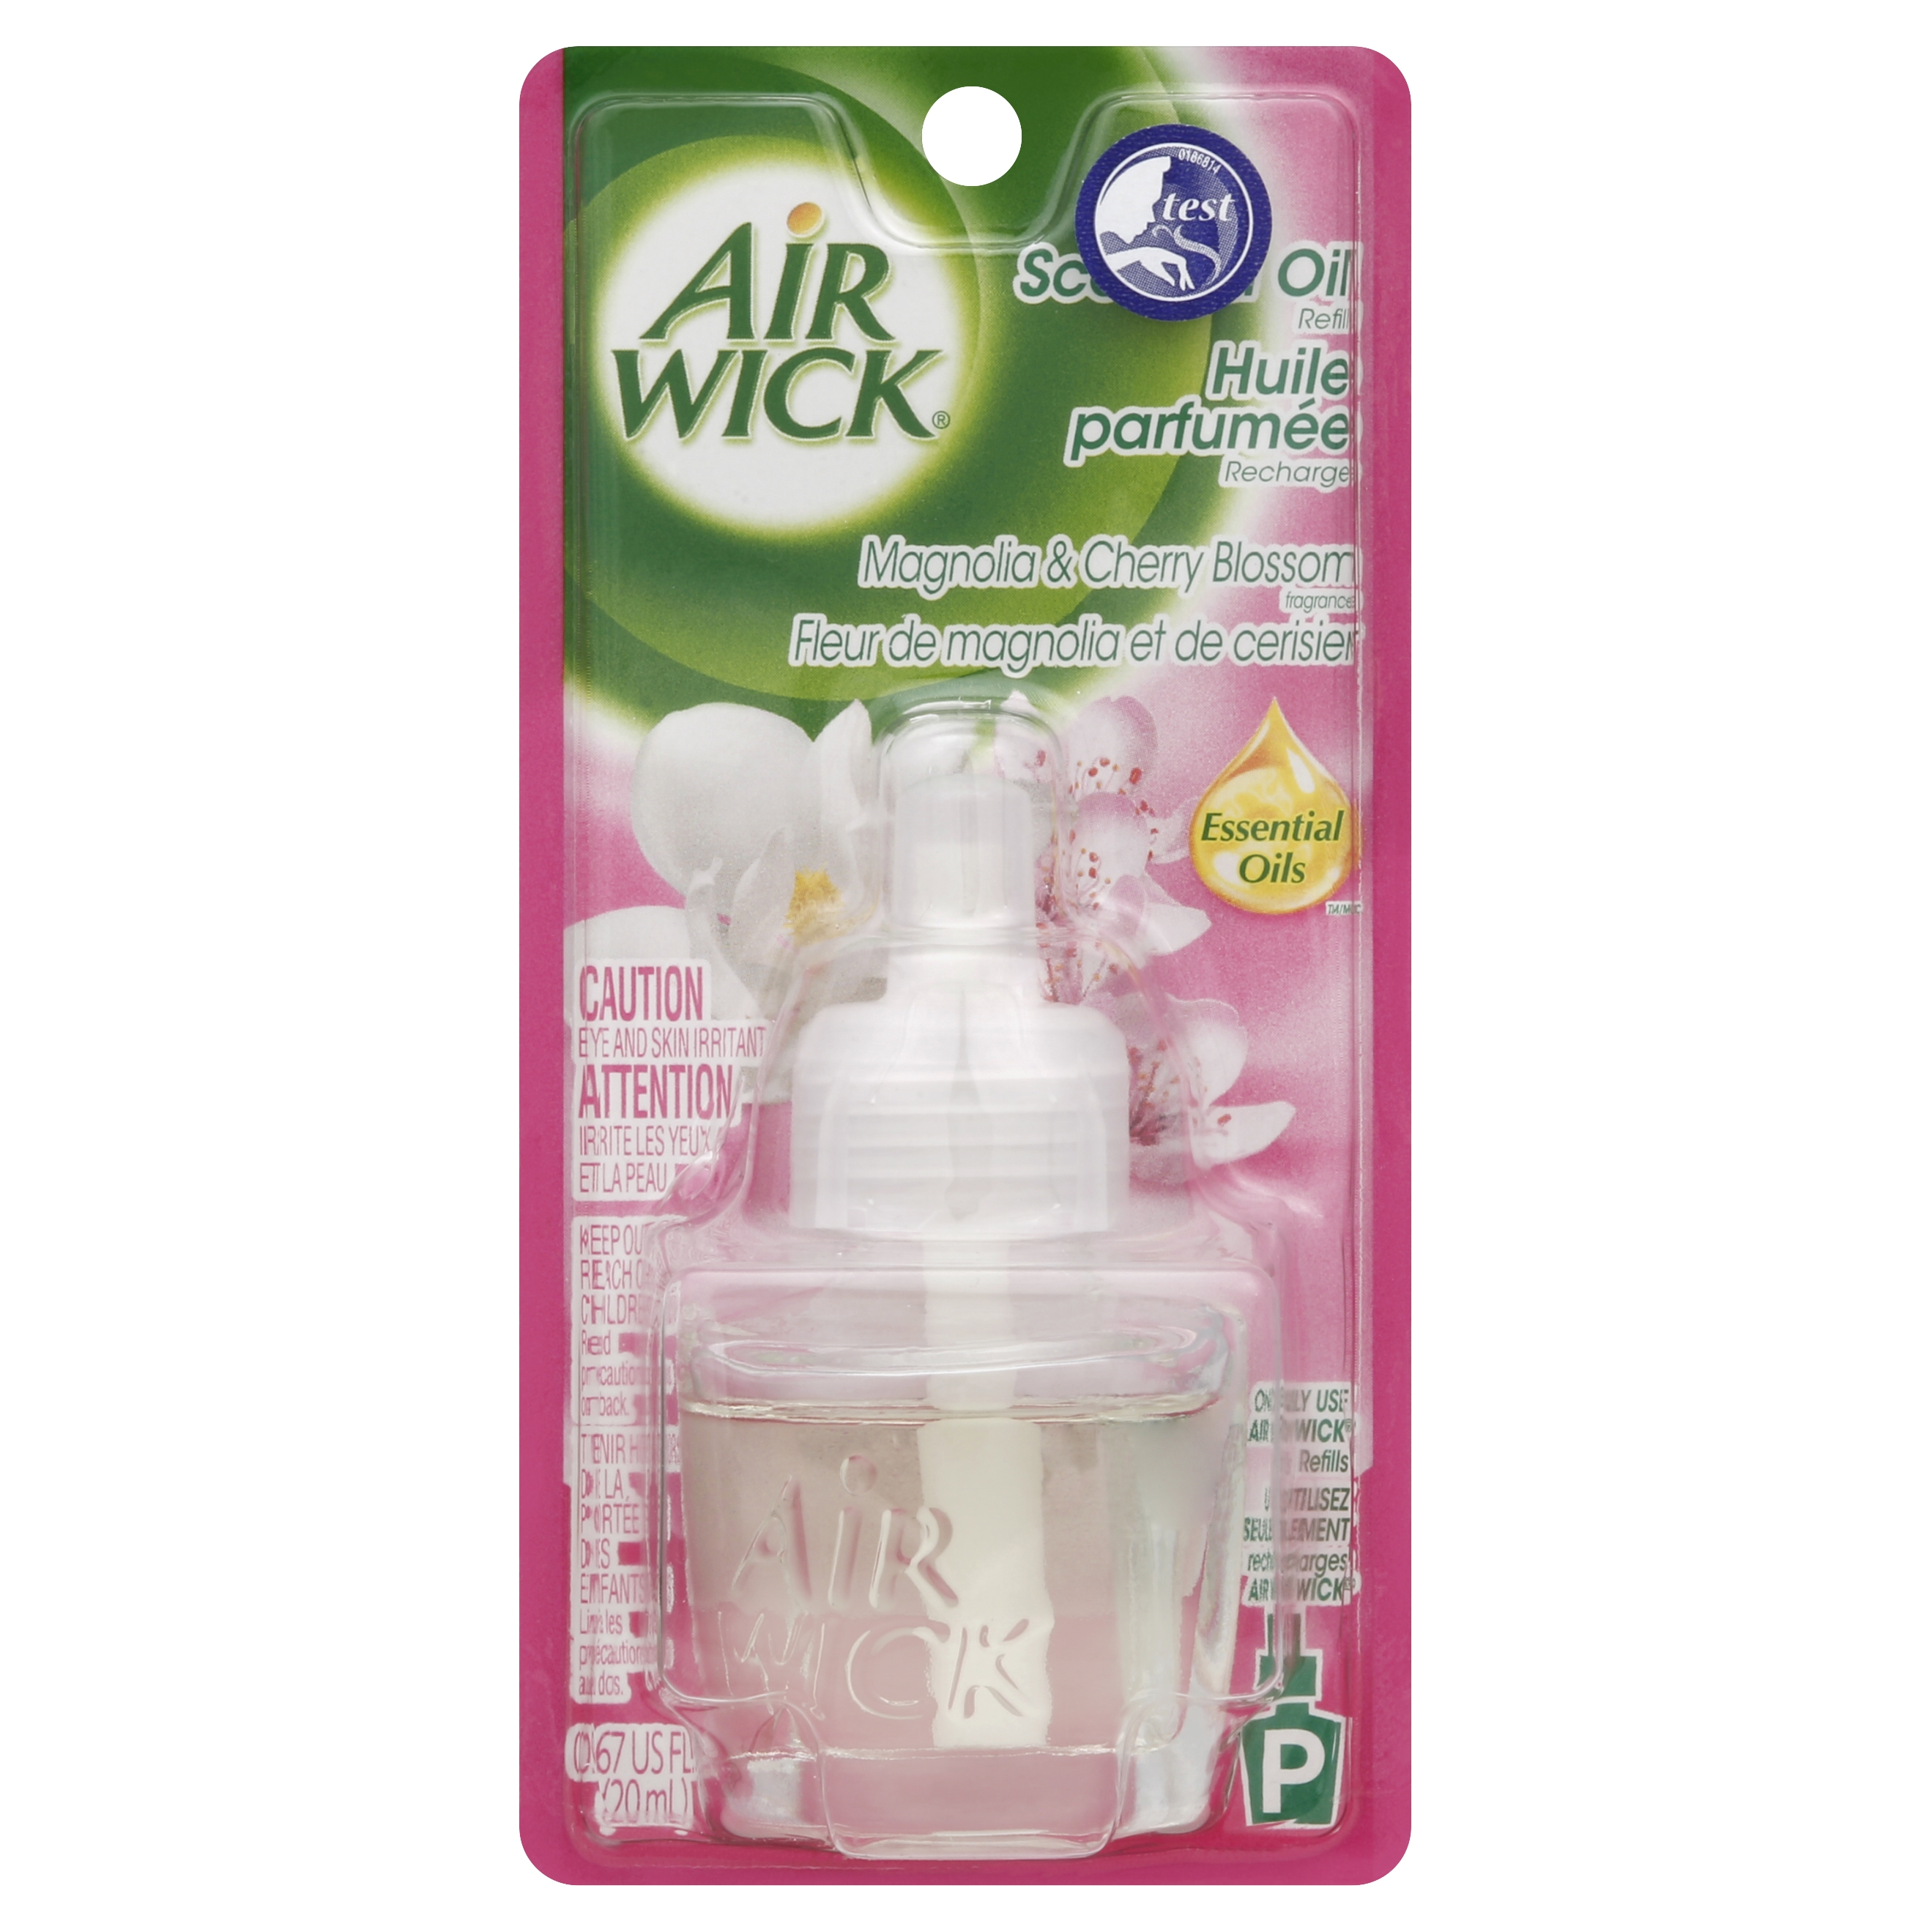 Air Wick Scented Oil Air Freshener, Magnolia and Cherry Blossom Scent, 1 Refill, 0.67 Ounce